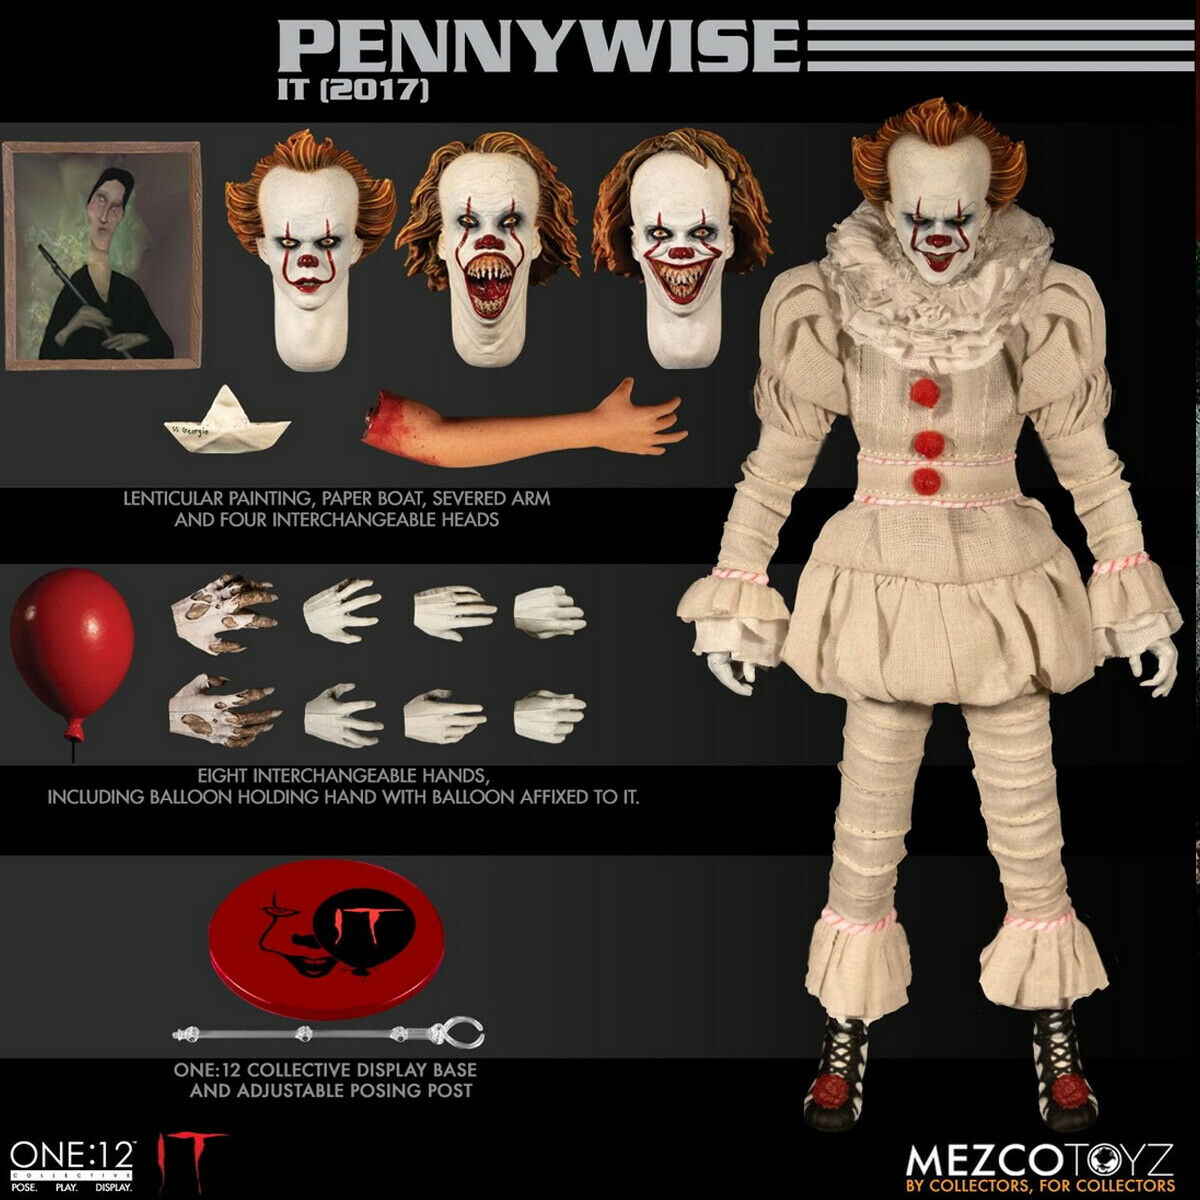 Mezco Toyz 77520 1 12 Scale Pennywise Collectible Action Figure Model Toys